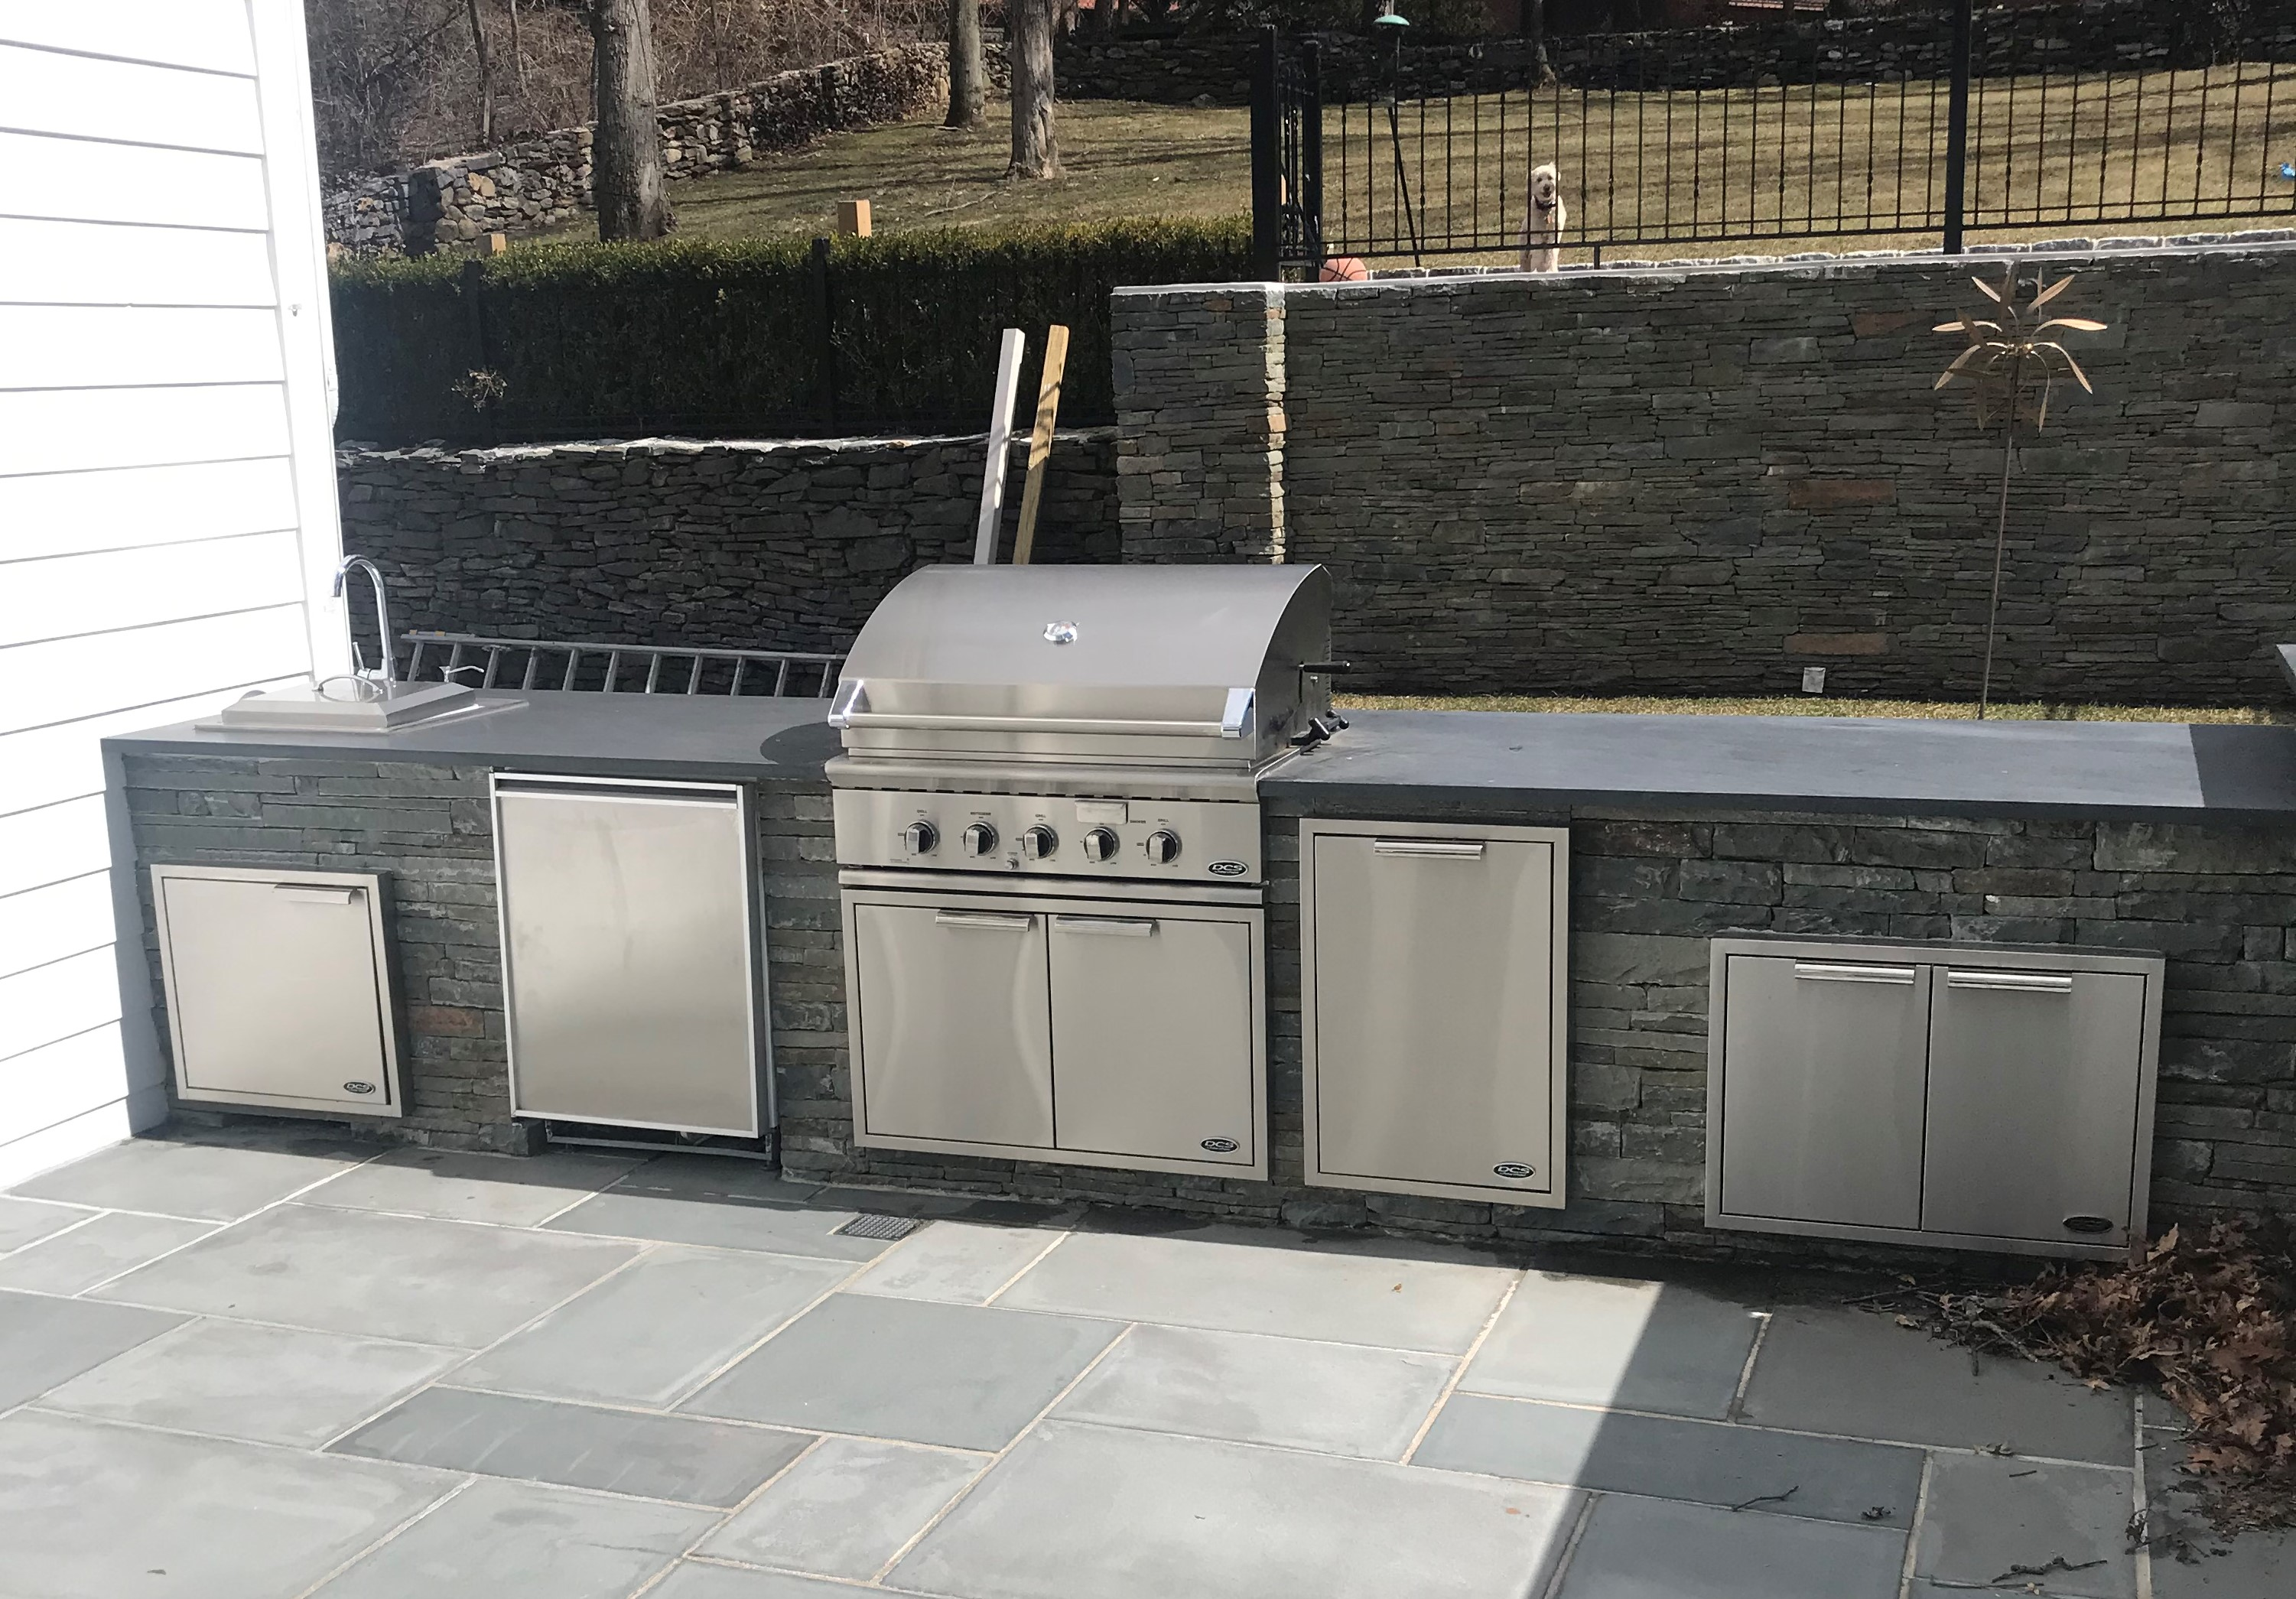 dcs outdoor kitchen